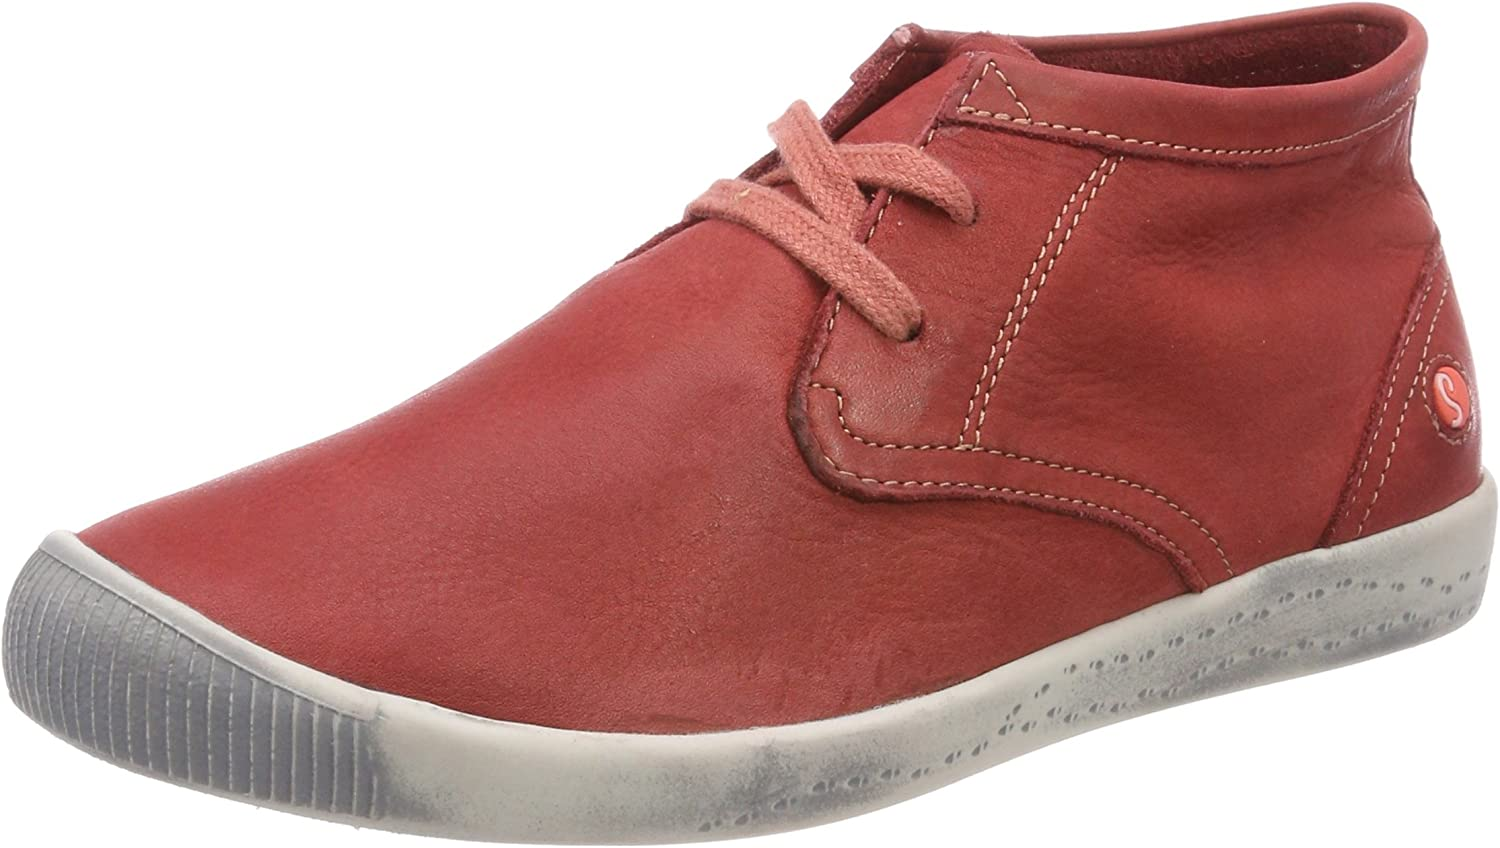 Softinos Women's High-Top Trainers: Shoes